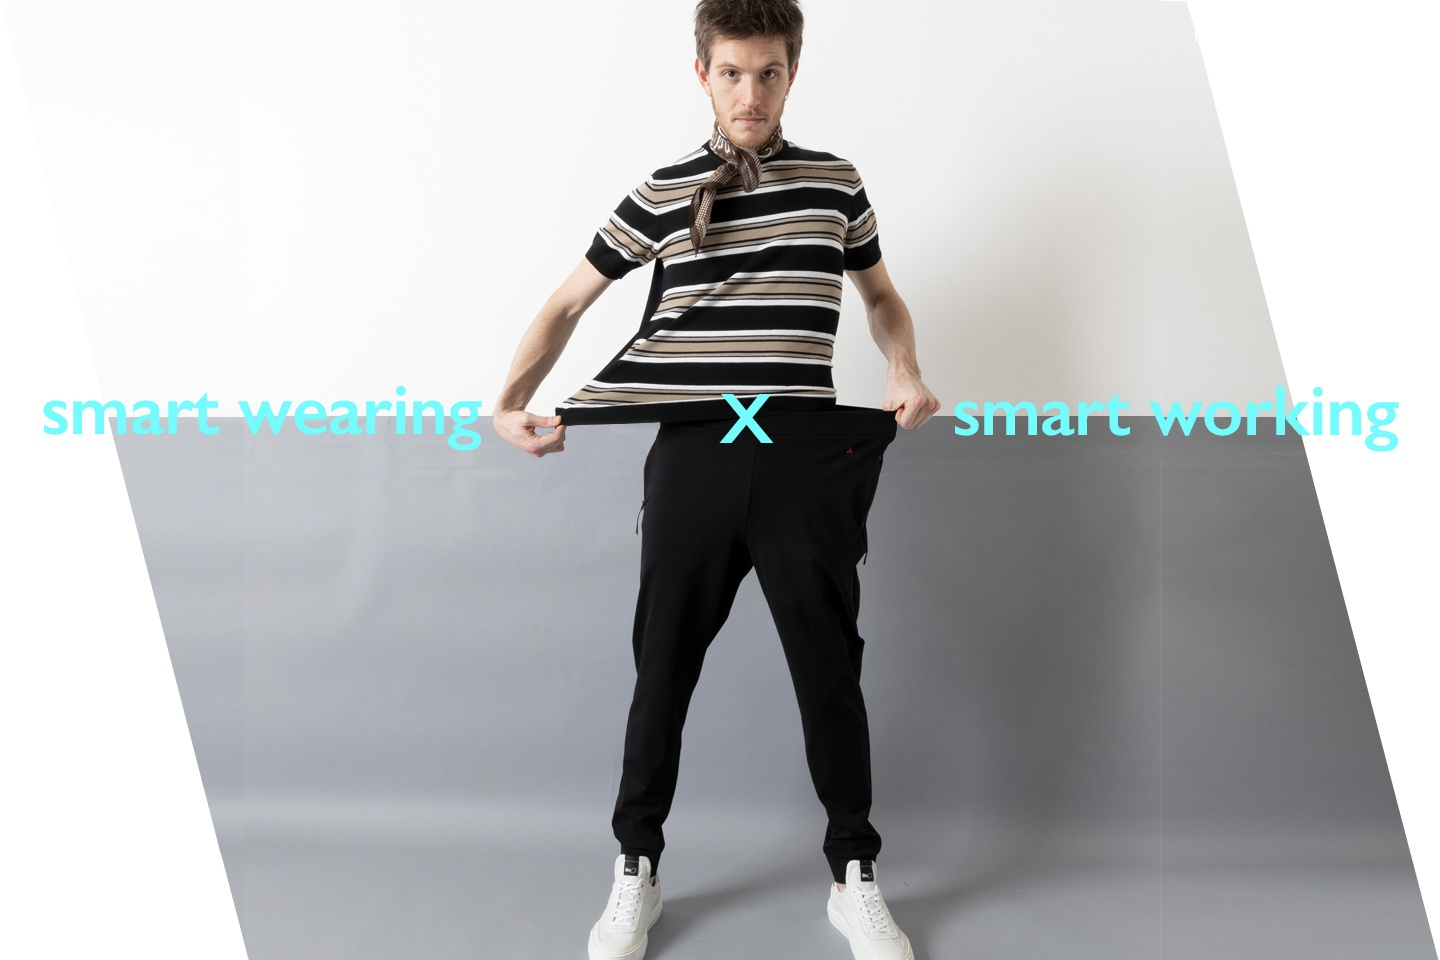 Smart wearing X smart working